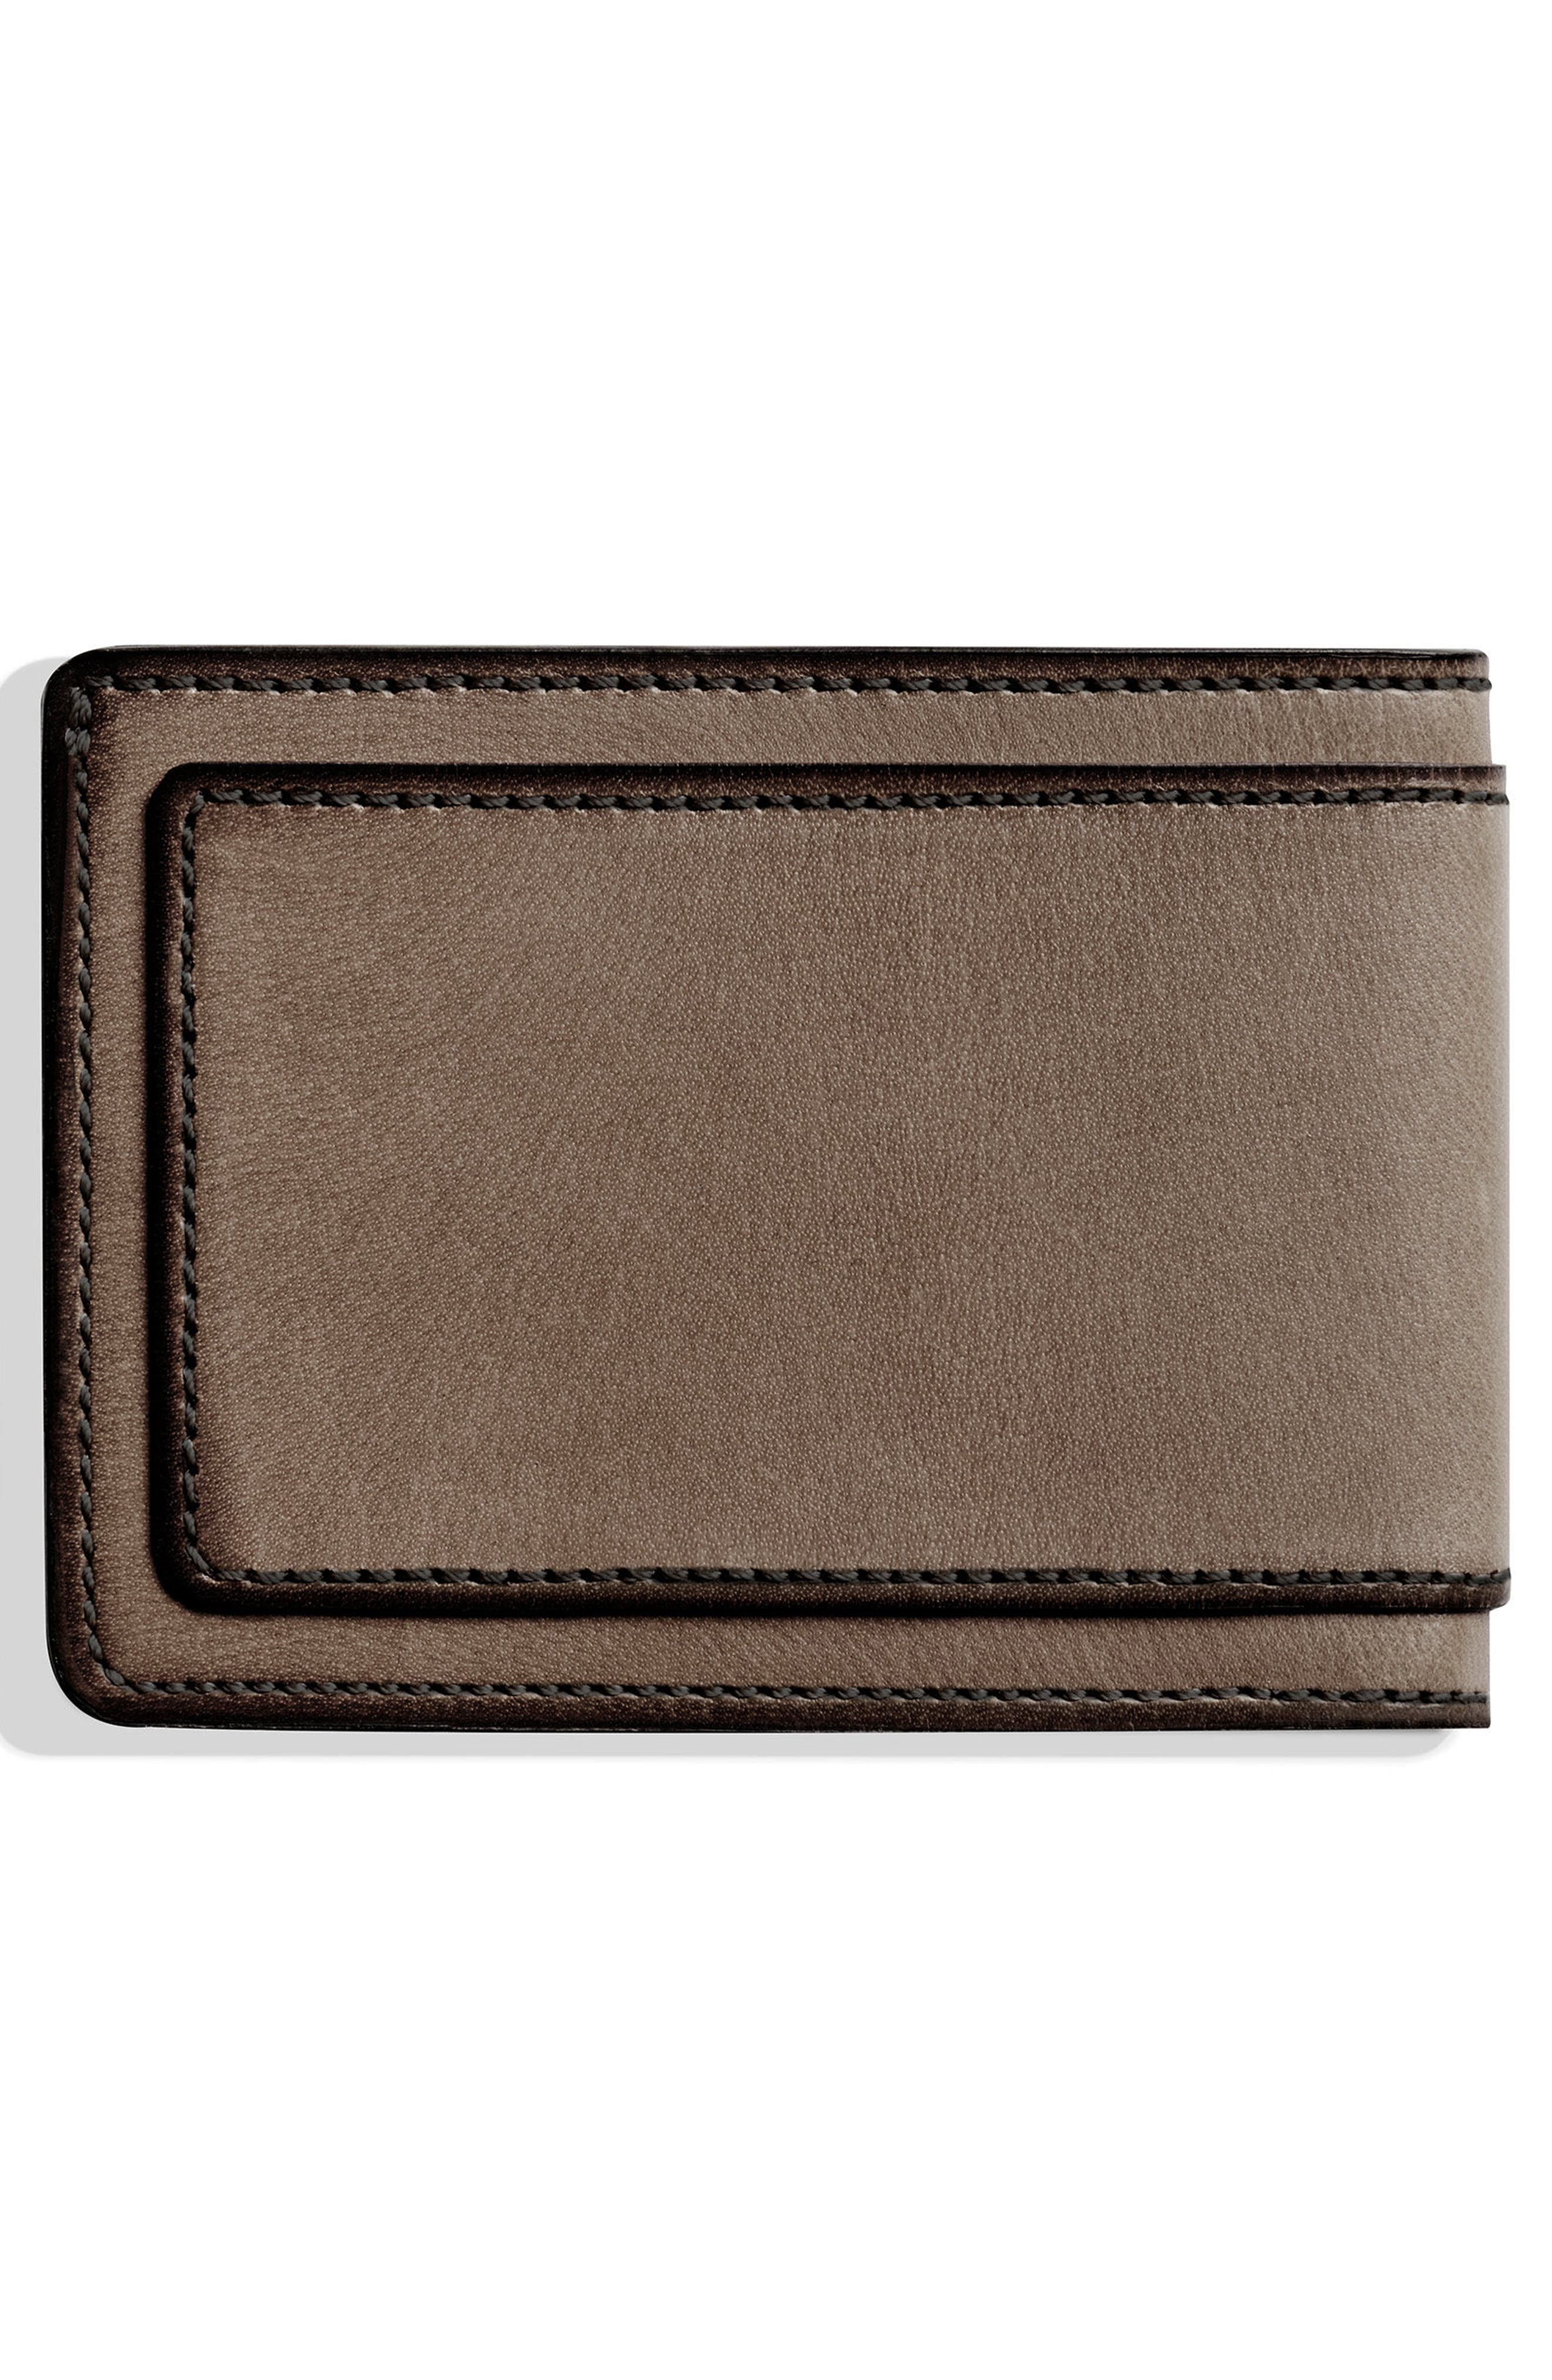 Outlaw Wallet,                             Alternate thumbnail 3, color,                             DARK GREY